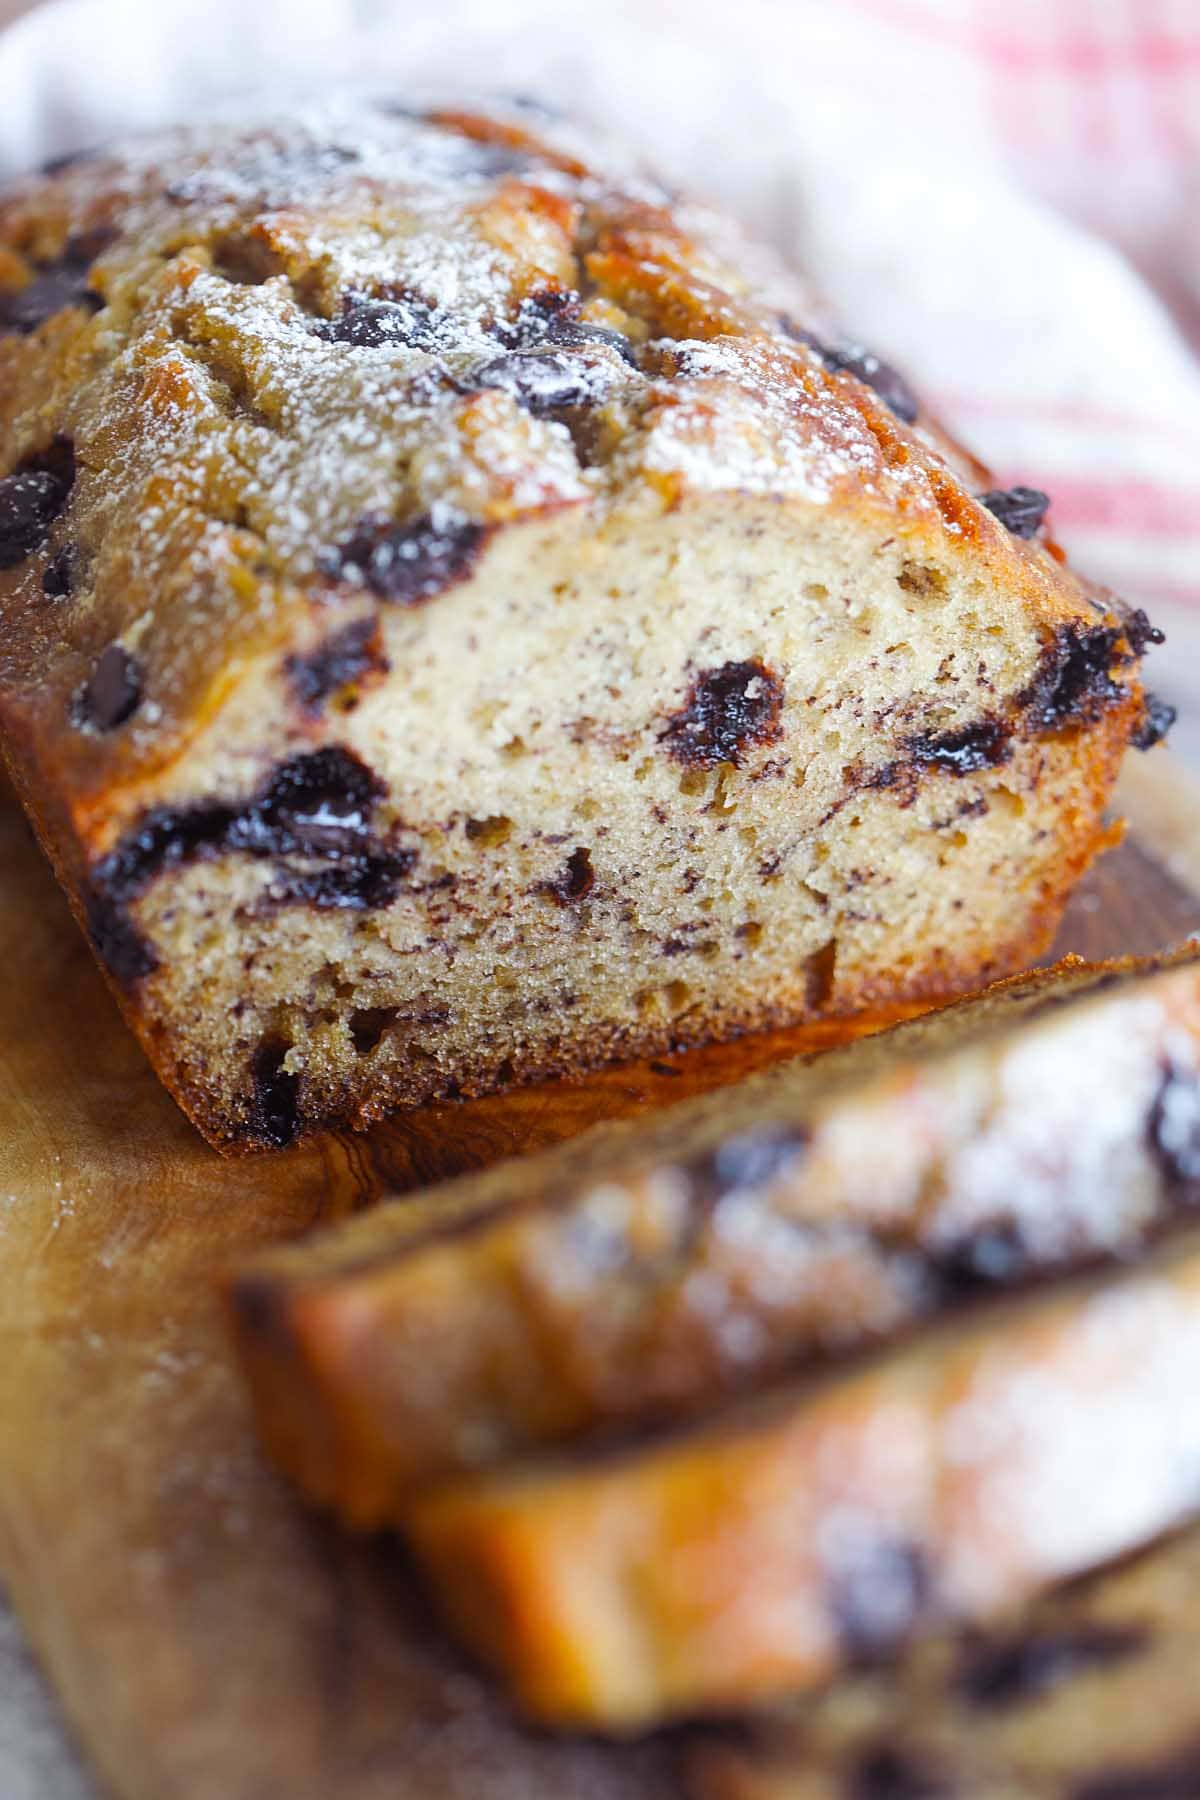 Best chocolate chip banana bread recipe.